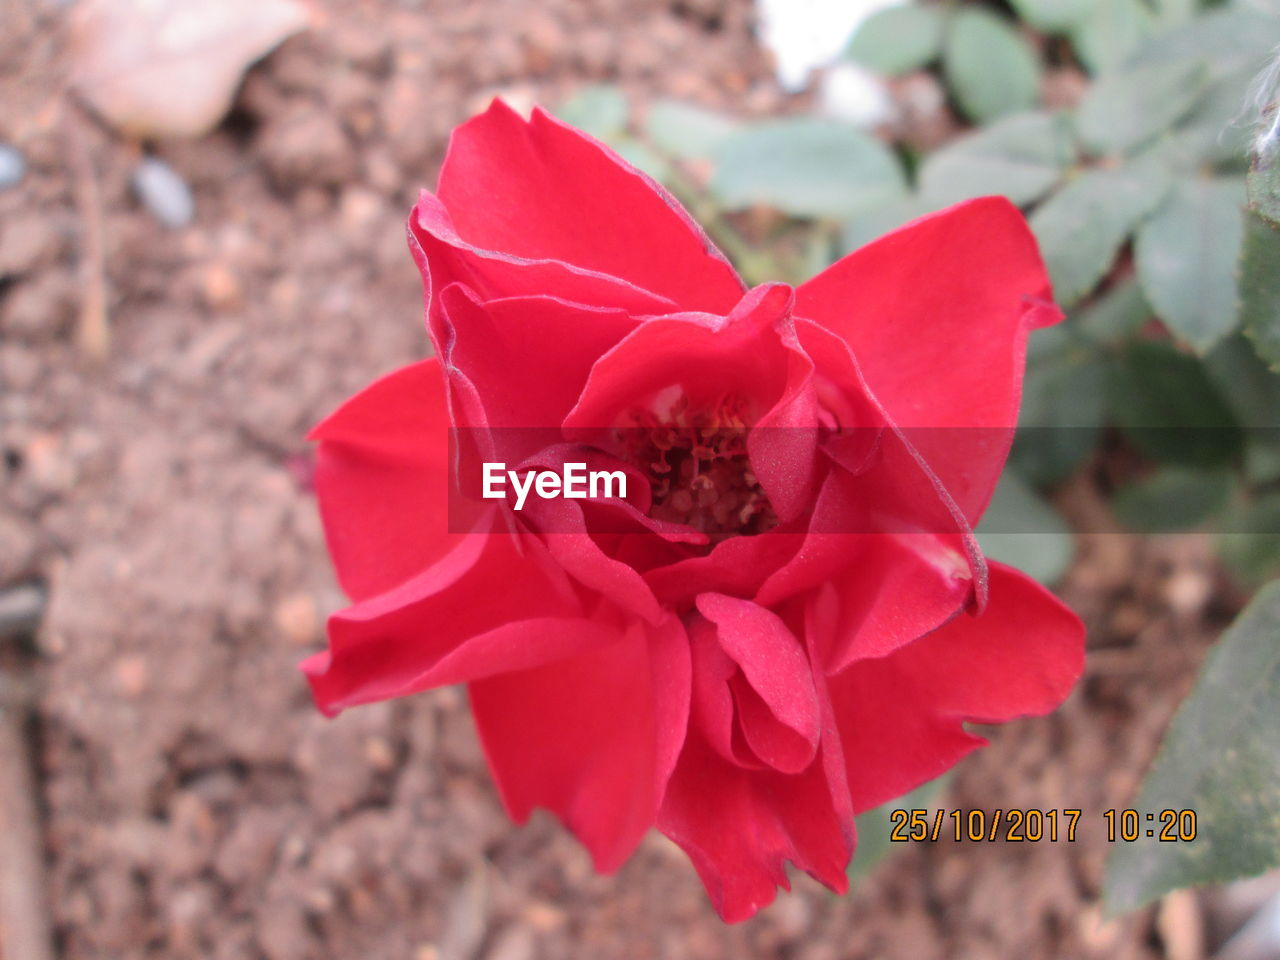 petal, flower, flower head, red, day, nature, no people, fragility, close-up, outdoors, focus on foreground, growth, beauty in nature, animal themes, freshness